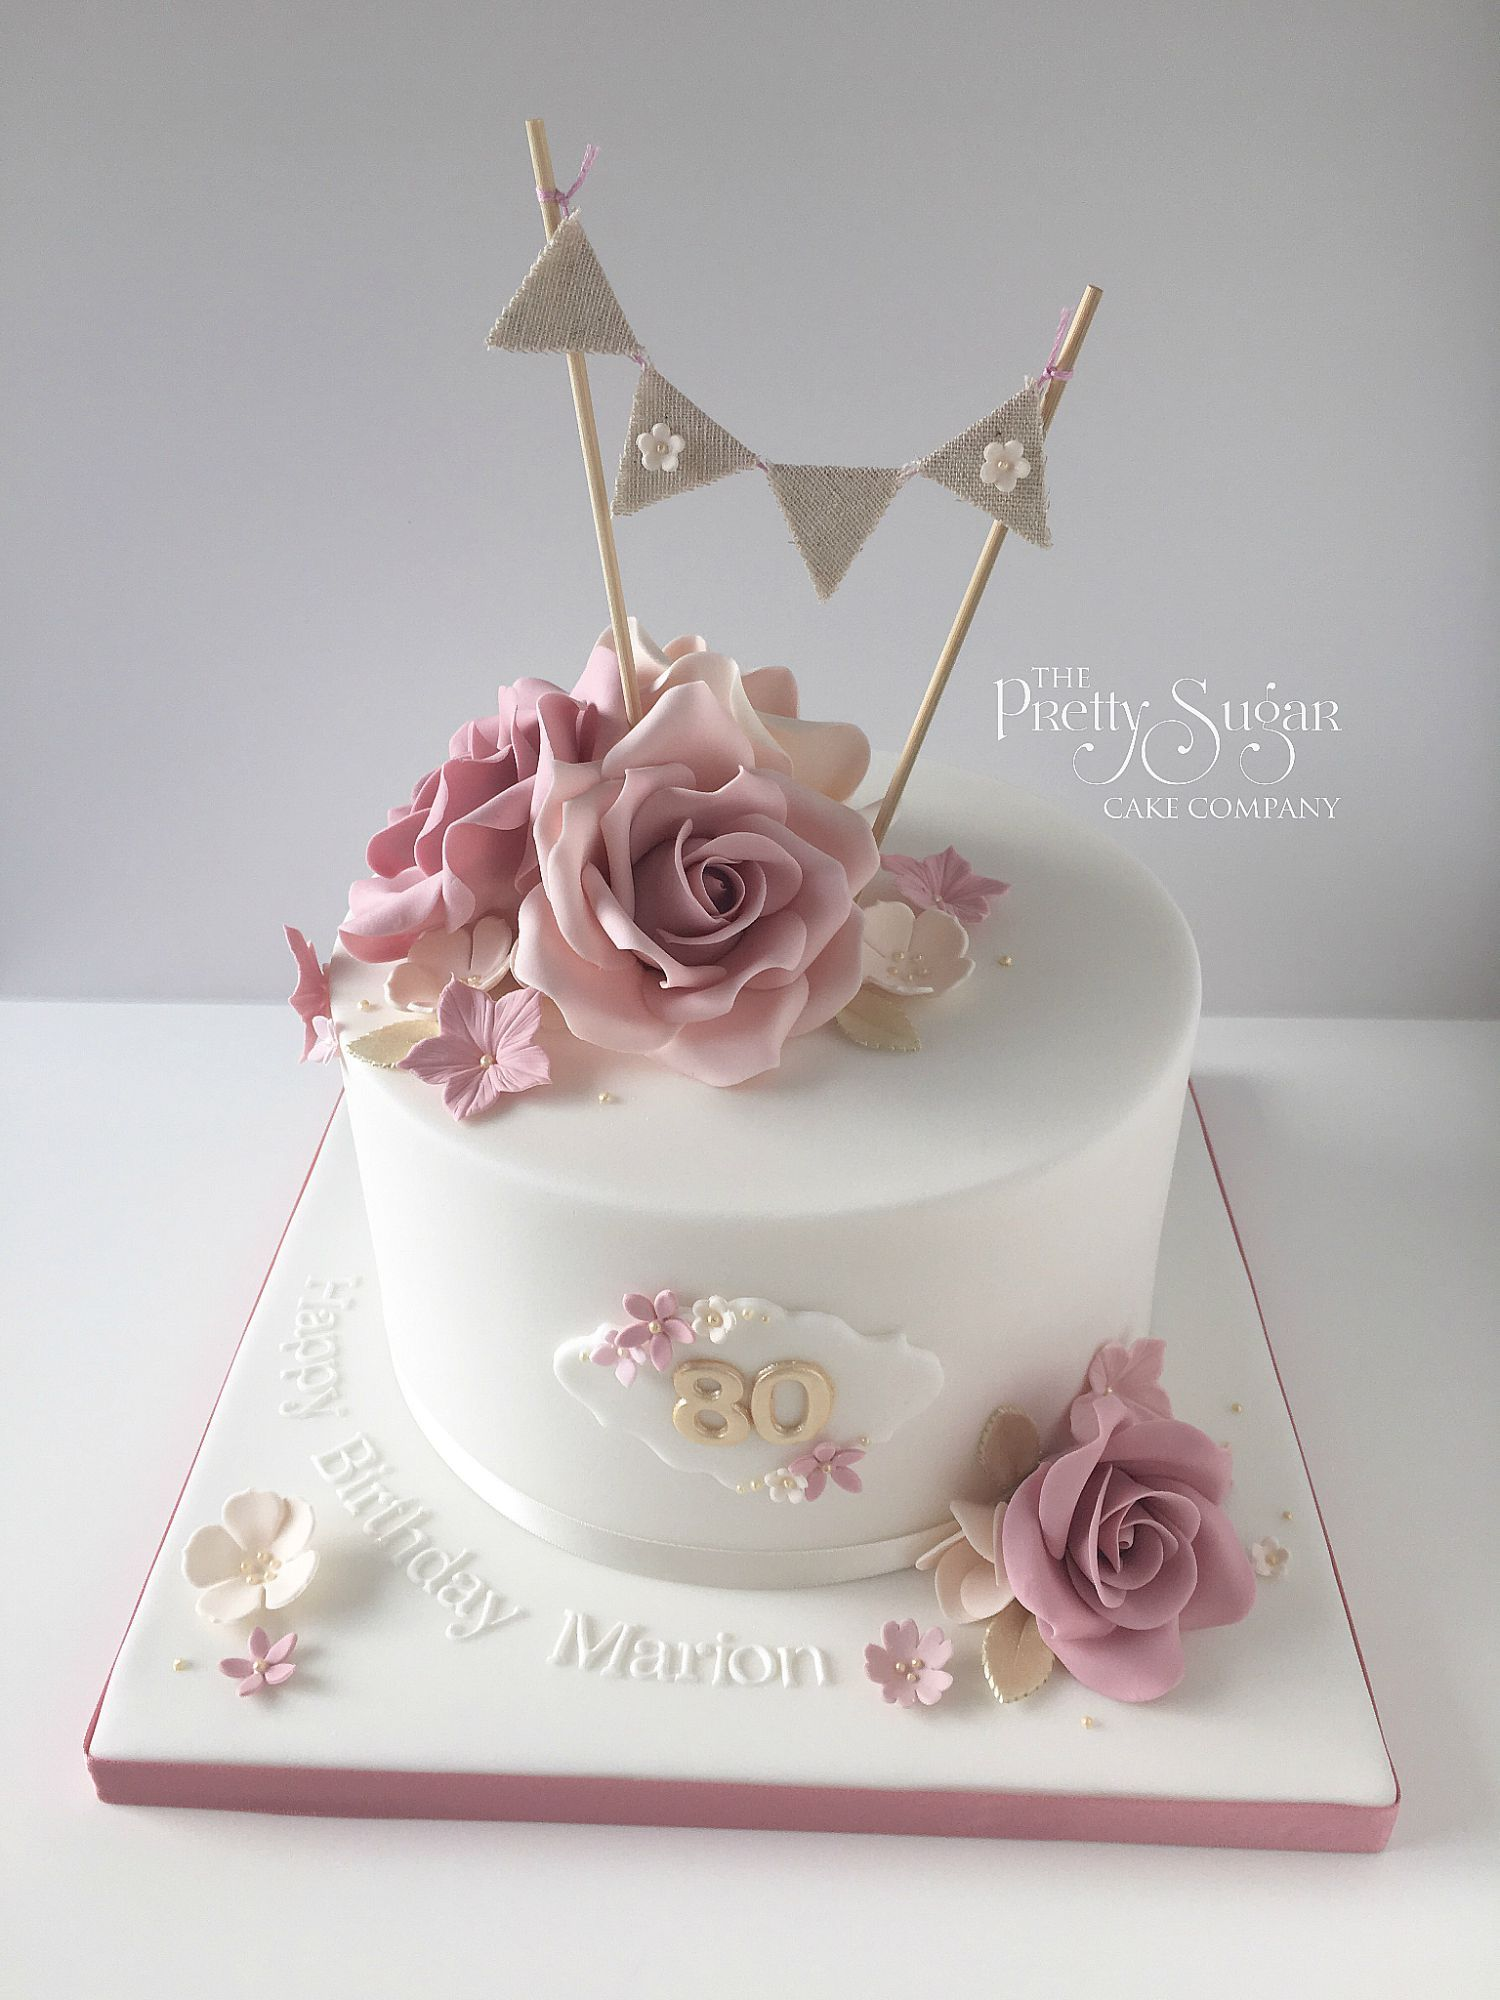 Vintage style 80th birthday cake with sugar roses and bunting topper vintage style 80th birthday cake with sugar roses and bunting topper izmirmasajfo